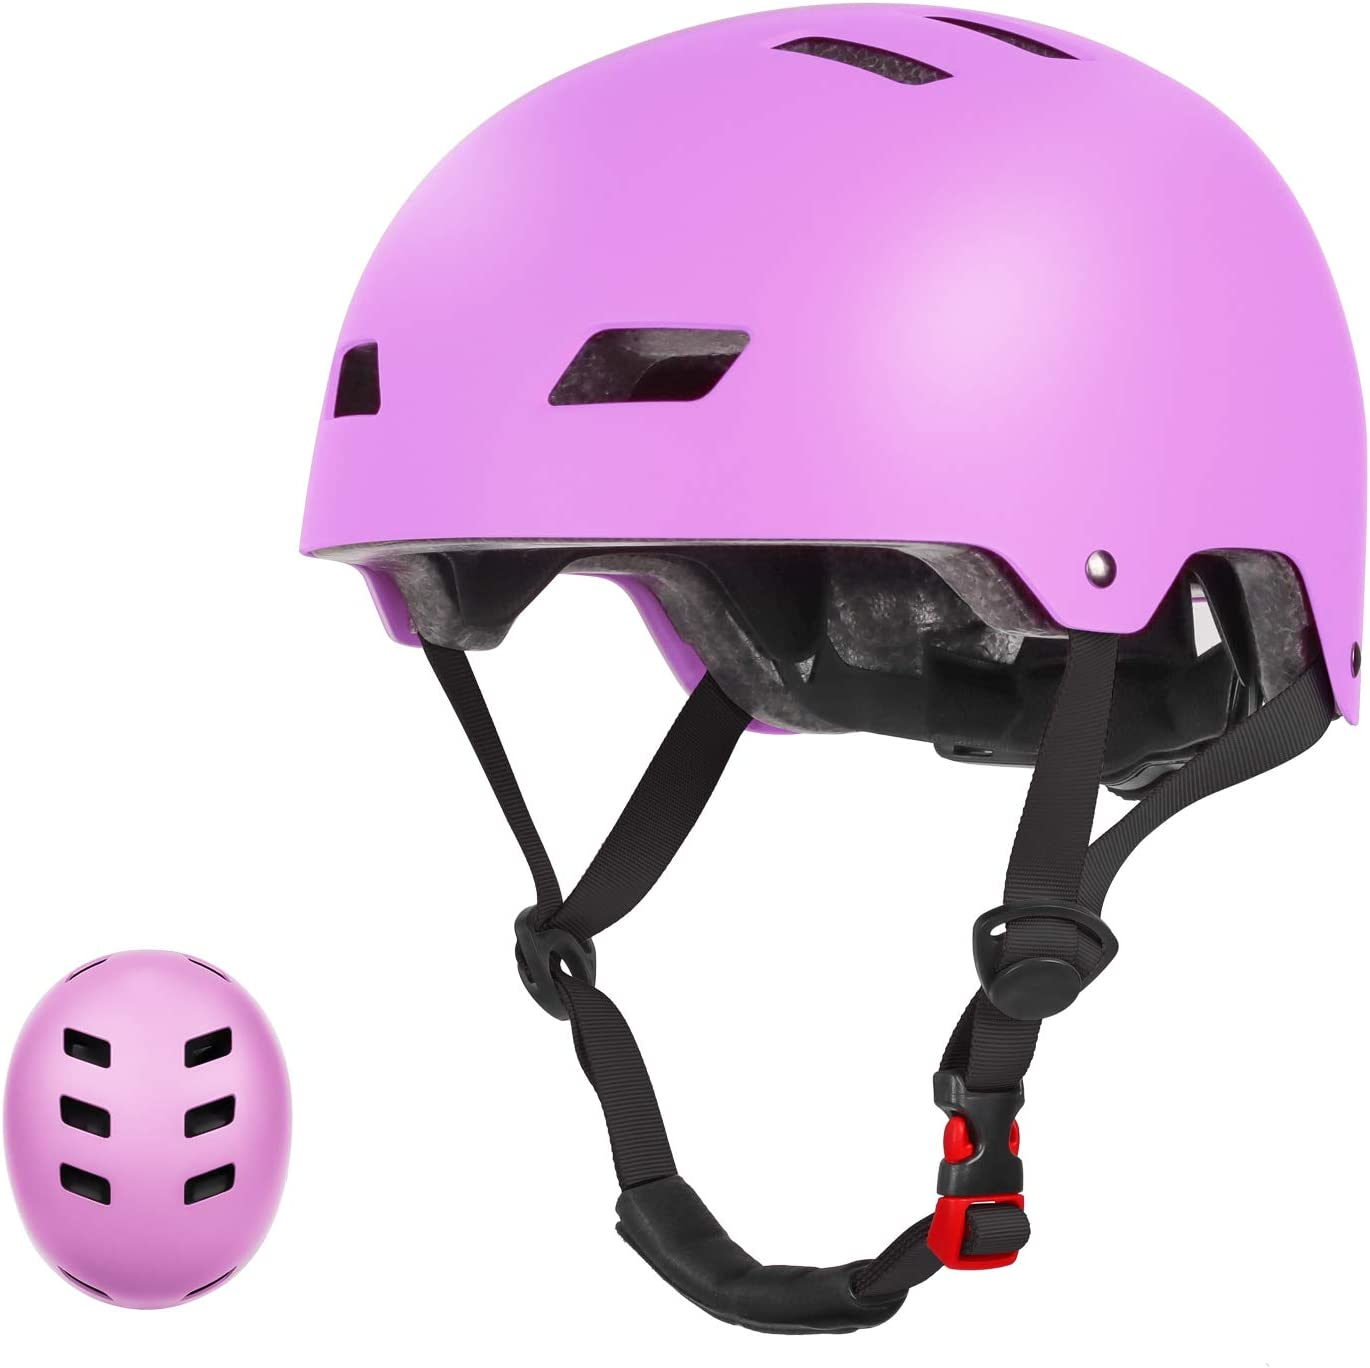 CPSC Certified Adjustable Helmet LANOVAGEAR Toddler Bike Helmet for Kids Youth 2-14 Years Old Girls Boys for Cycling Scooter Skating Rollerblading